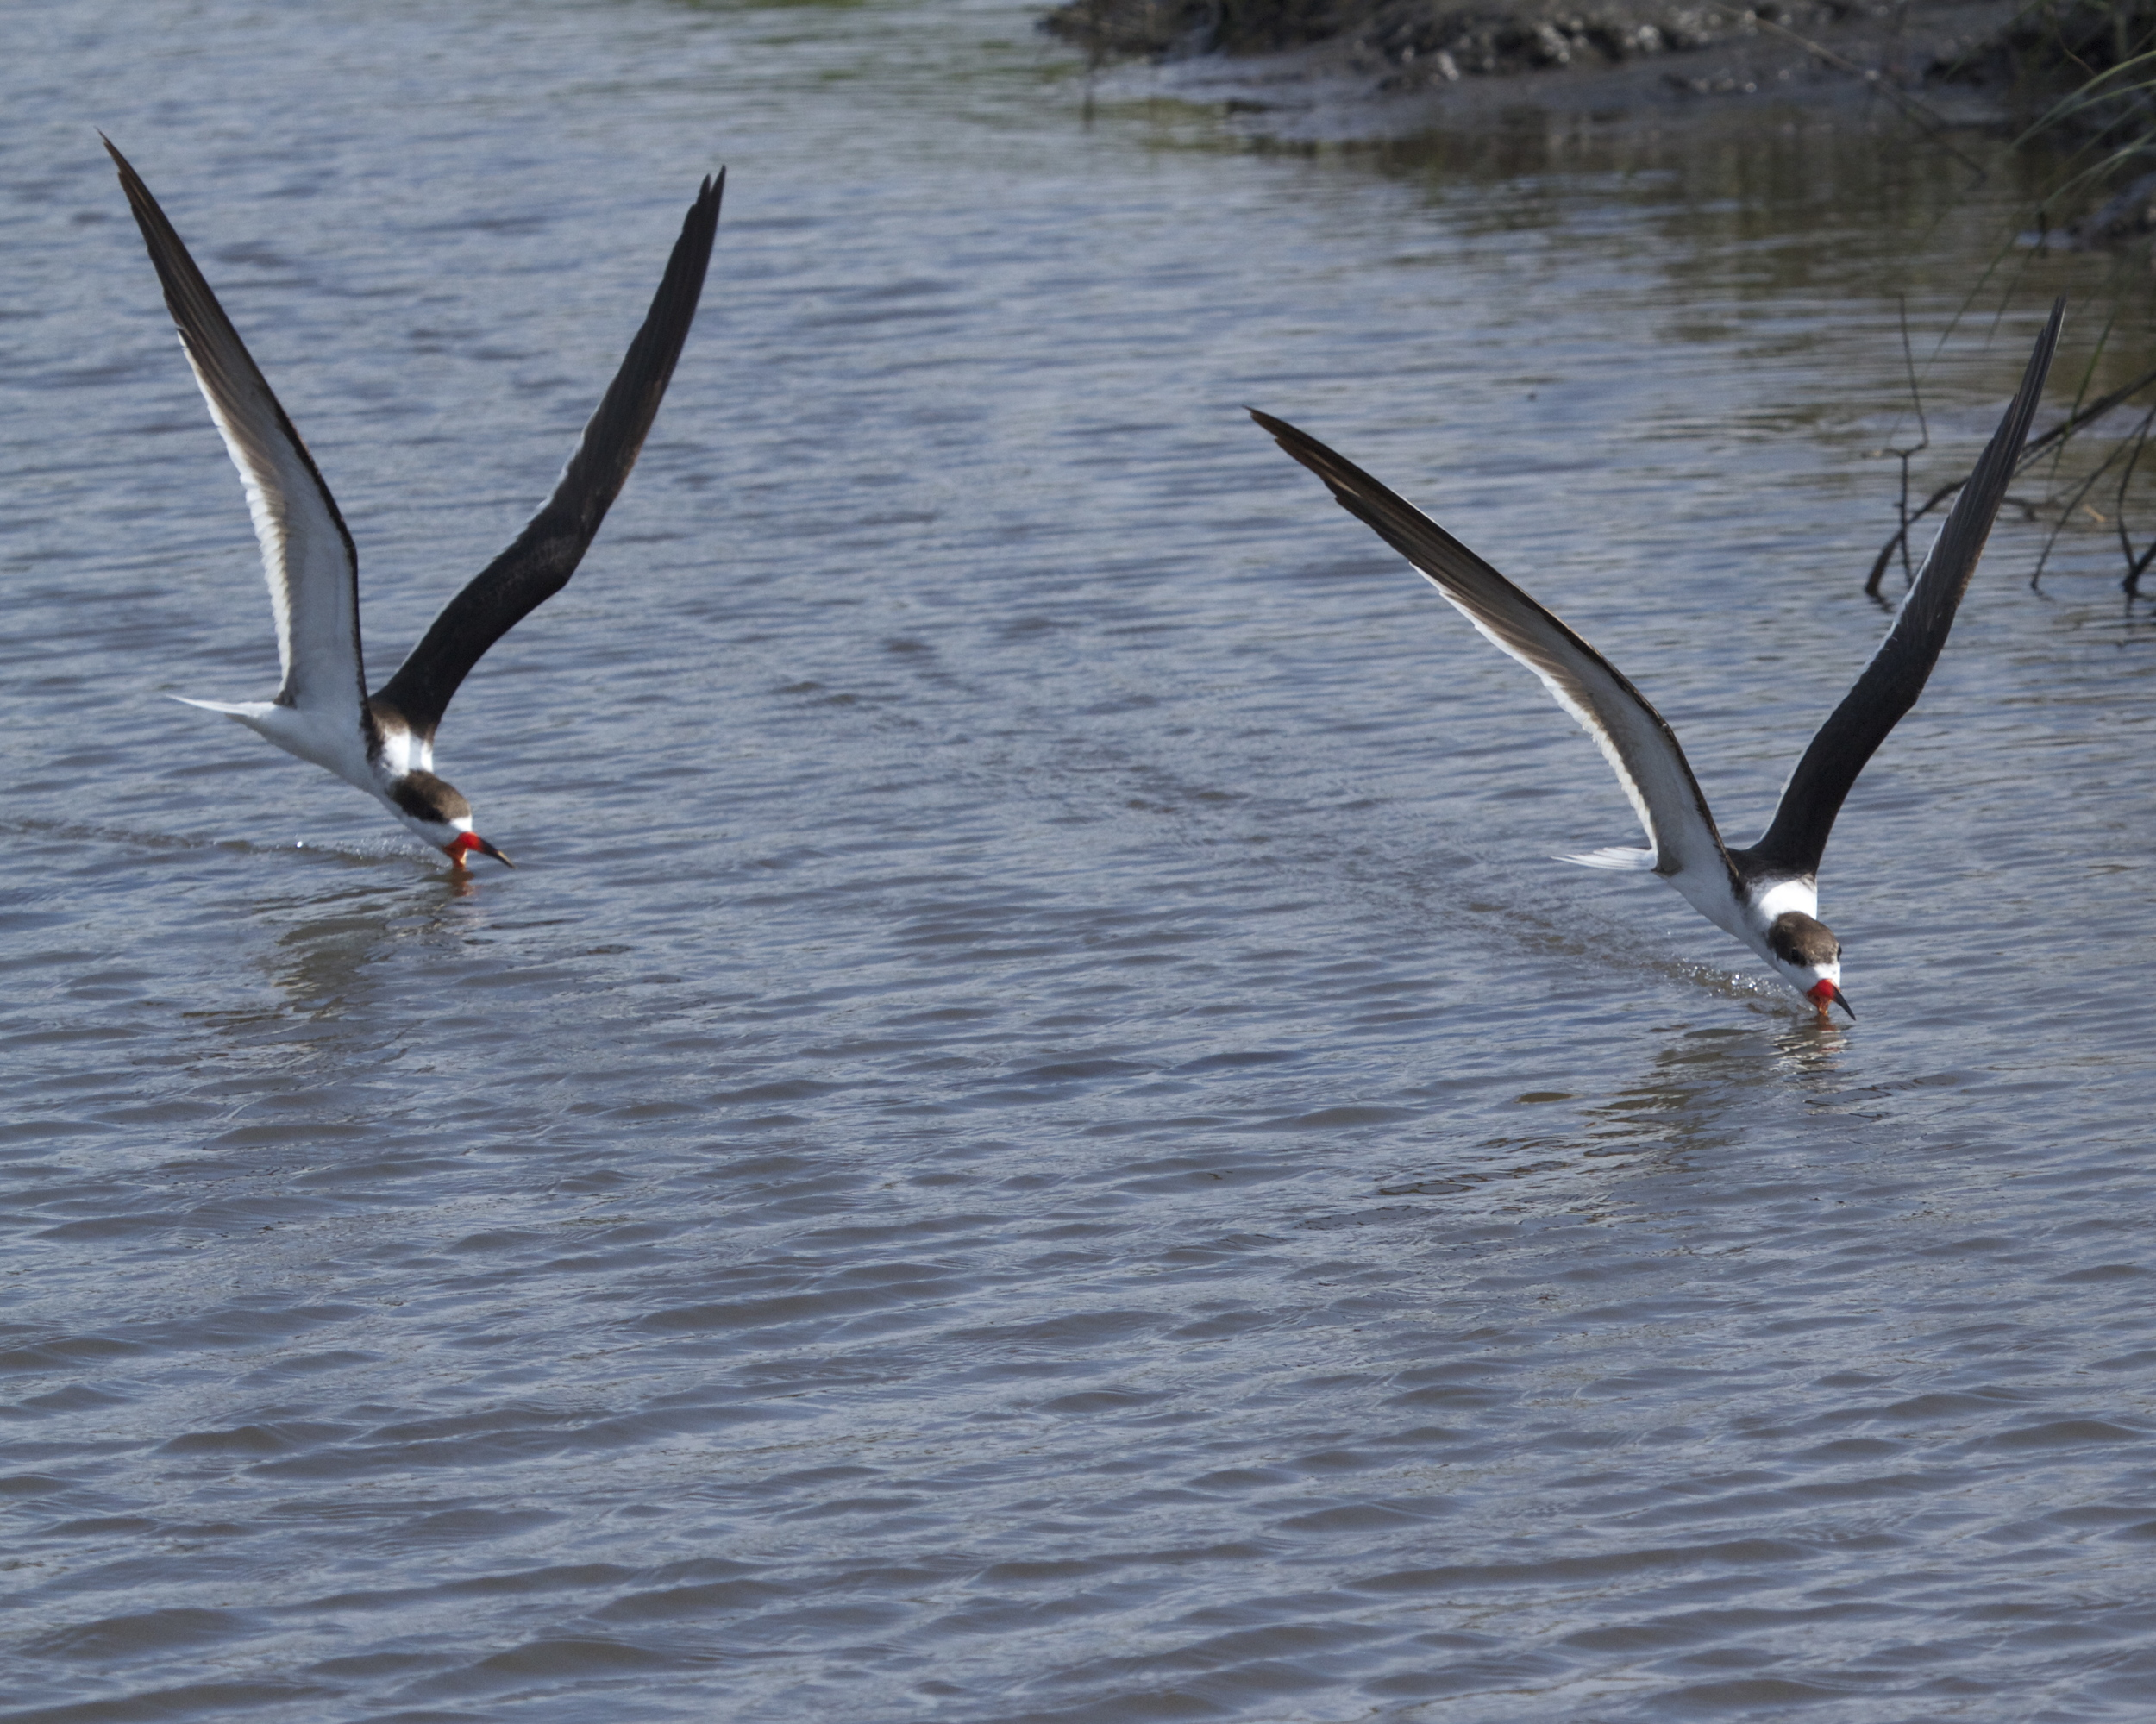 Black Skimmers swoop low over the Broward with their beaks skimming the water for fish.